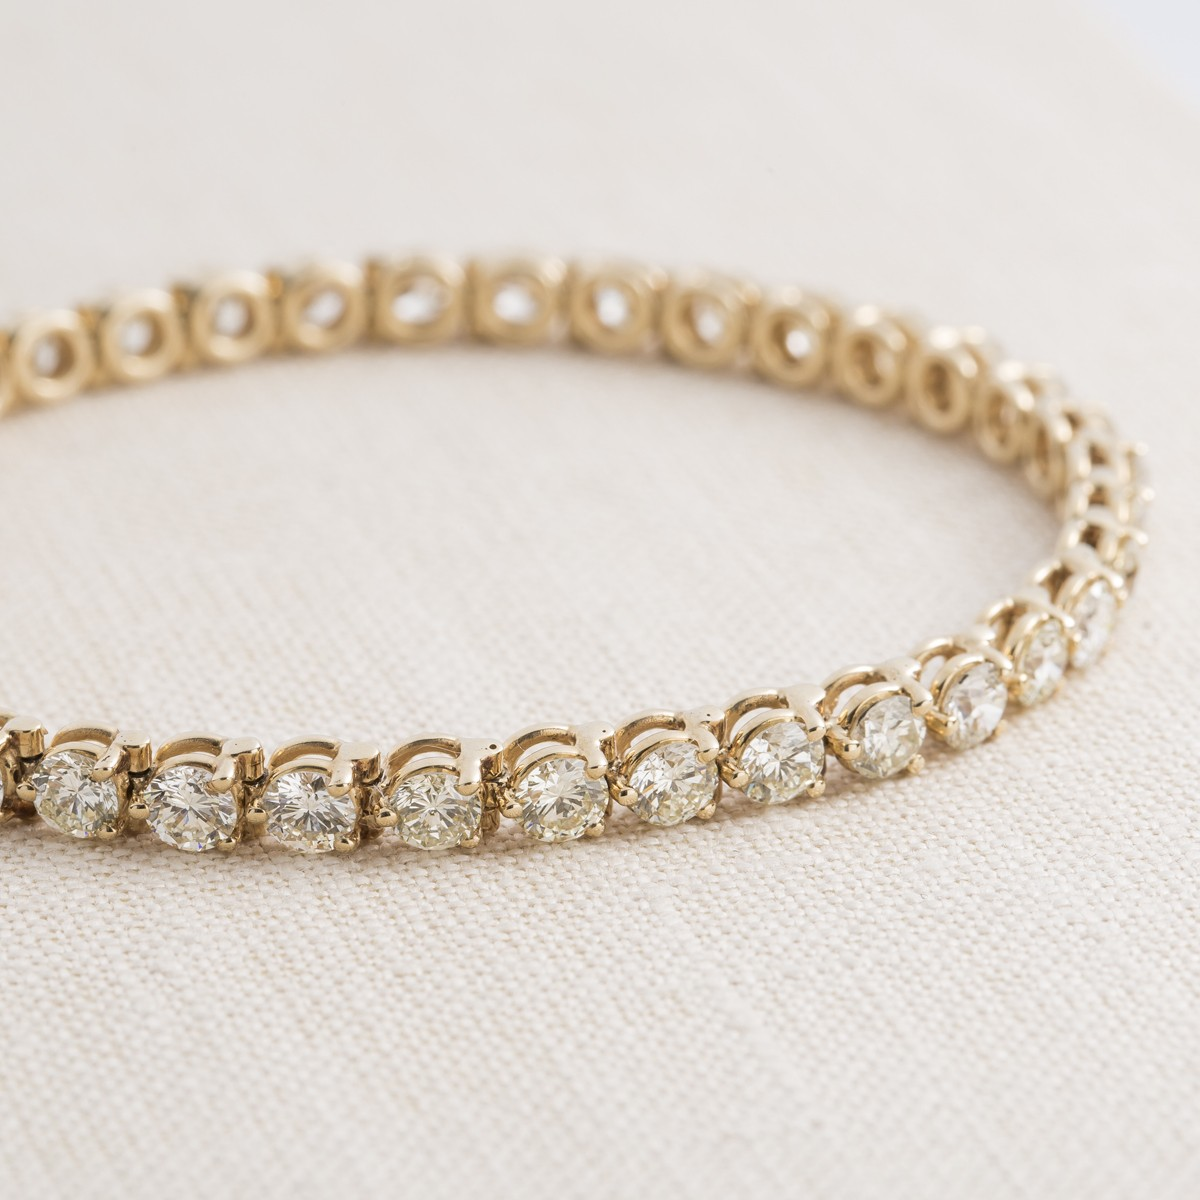 Vintage 14k Yellow Gold and Diamond Bracelet